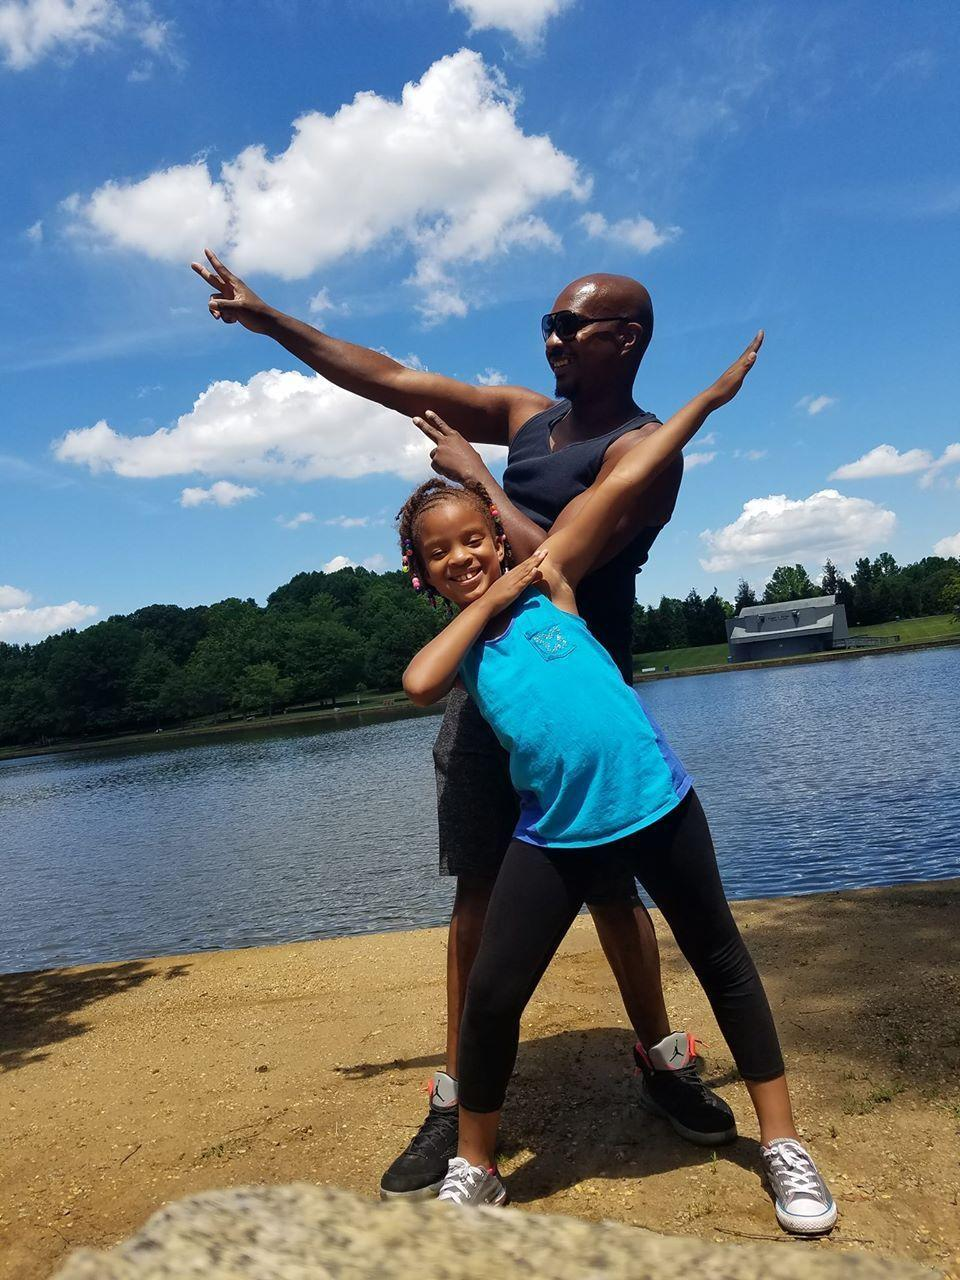 black singles in hyattsville Search for local christian singles in hyattsville online dating brings singles together who may never otherwise meet it's a big world and the loveandseekcom.